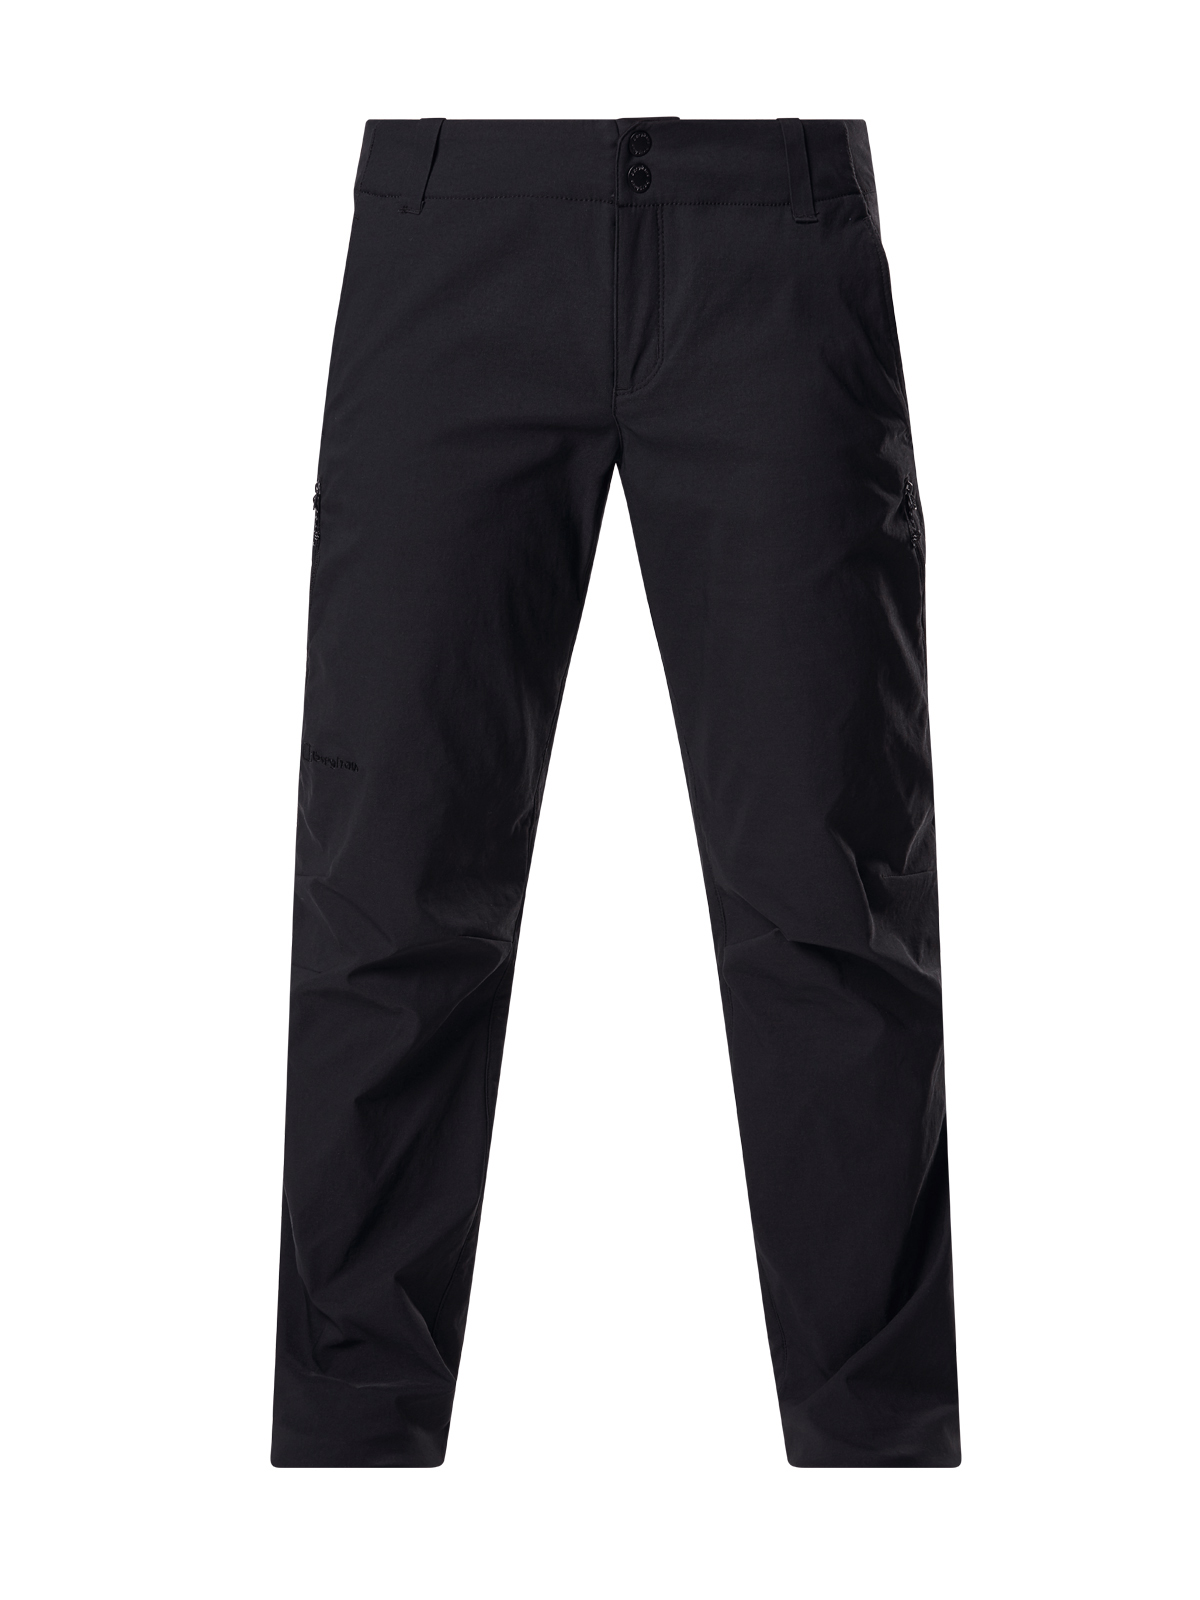 Berghaus Women's Ortler 2.0 Pant | Trousers